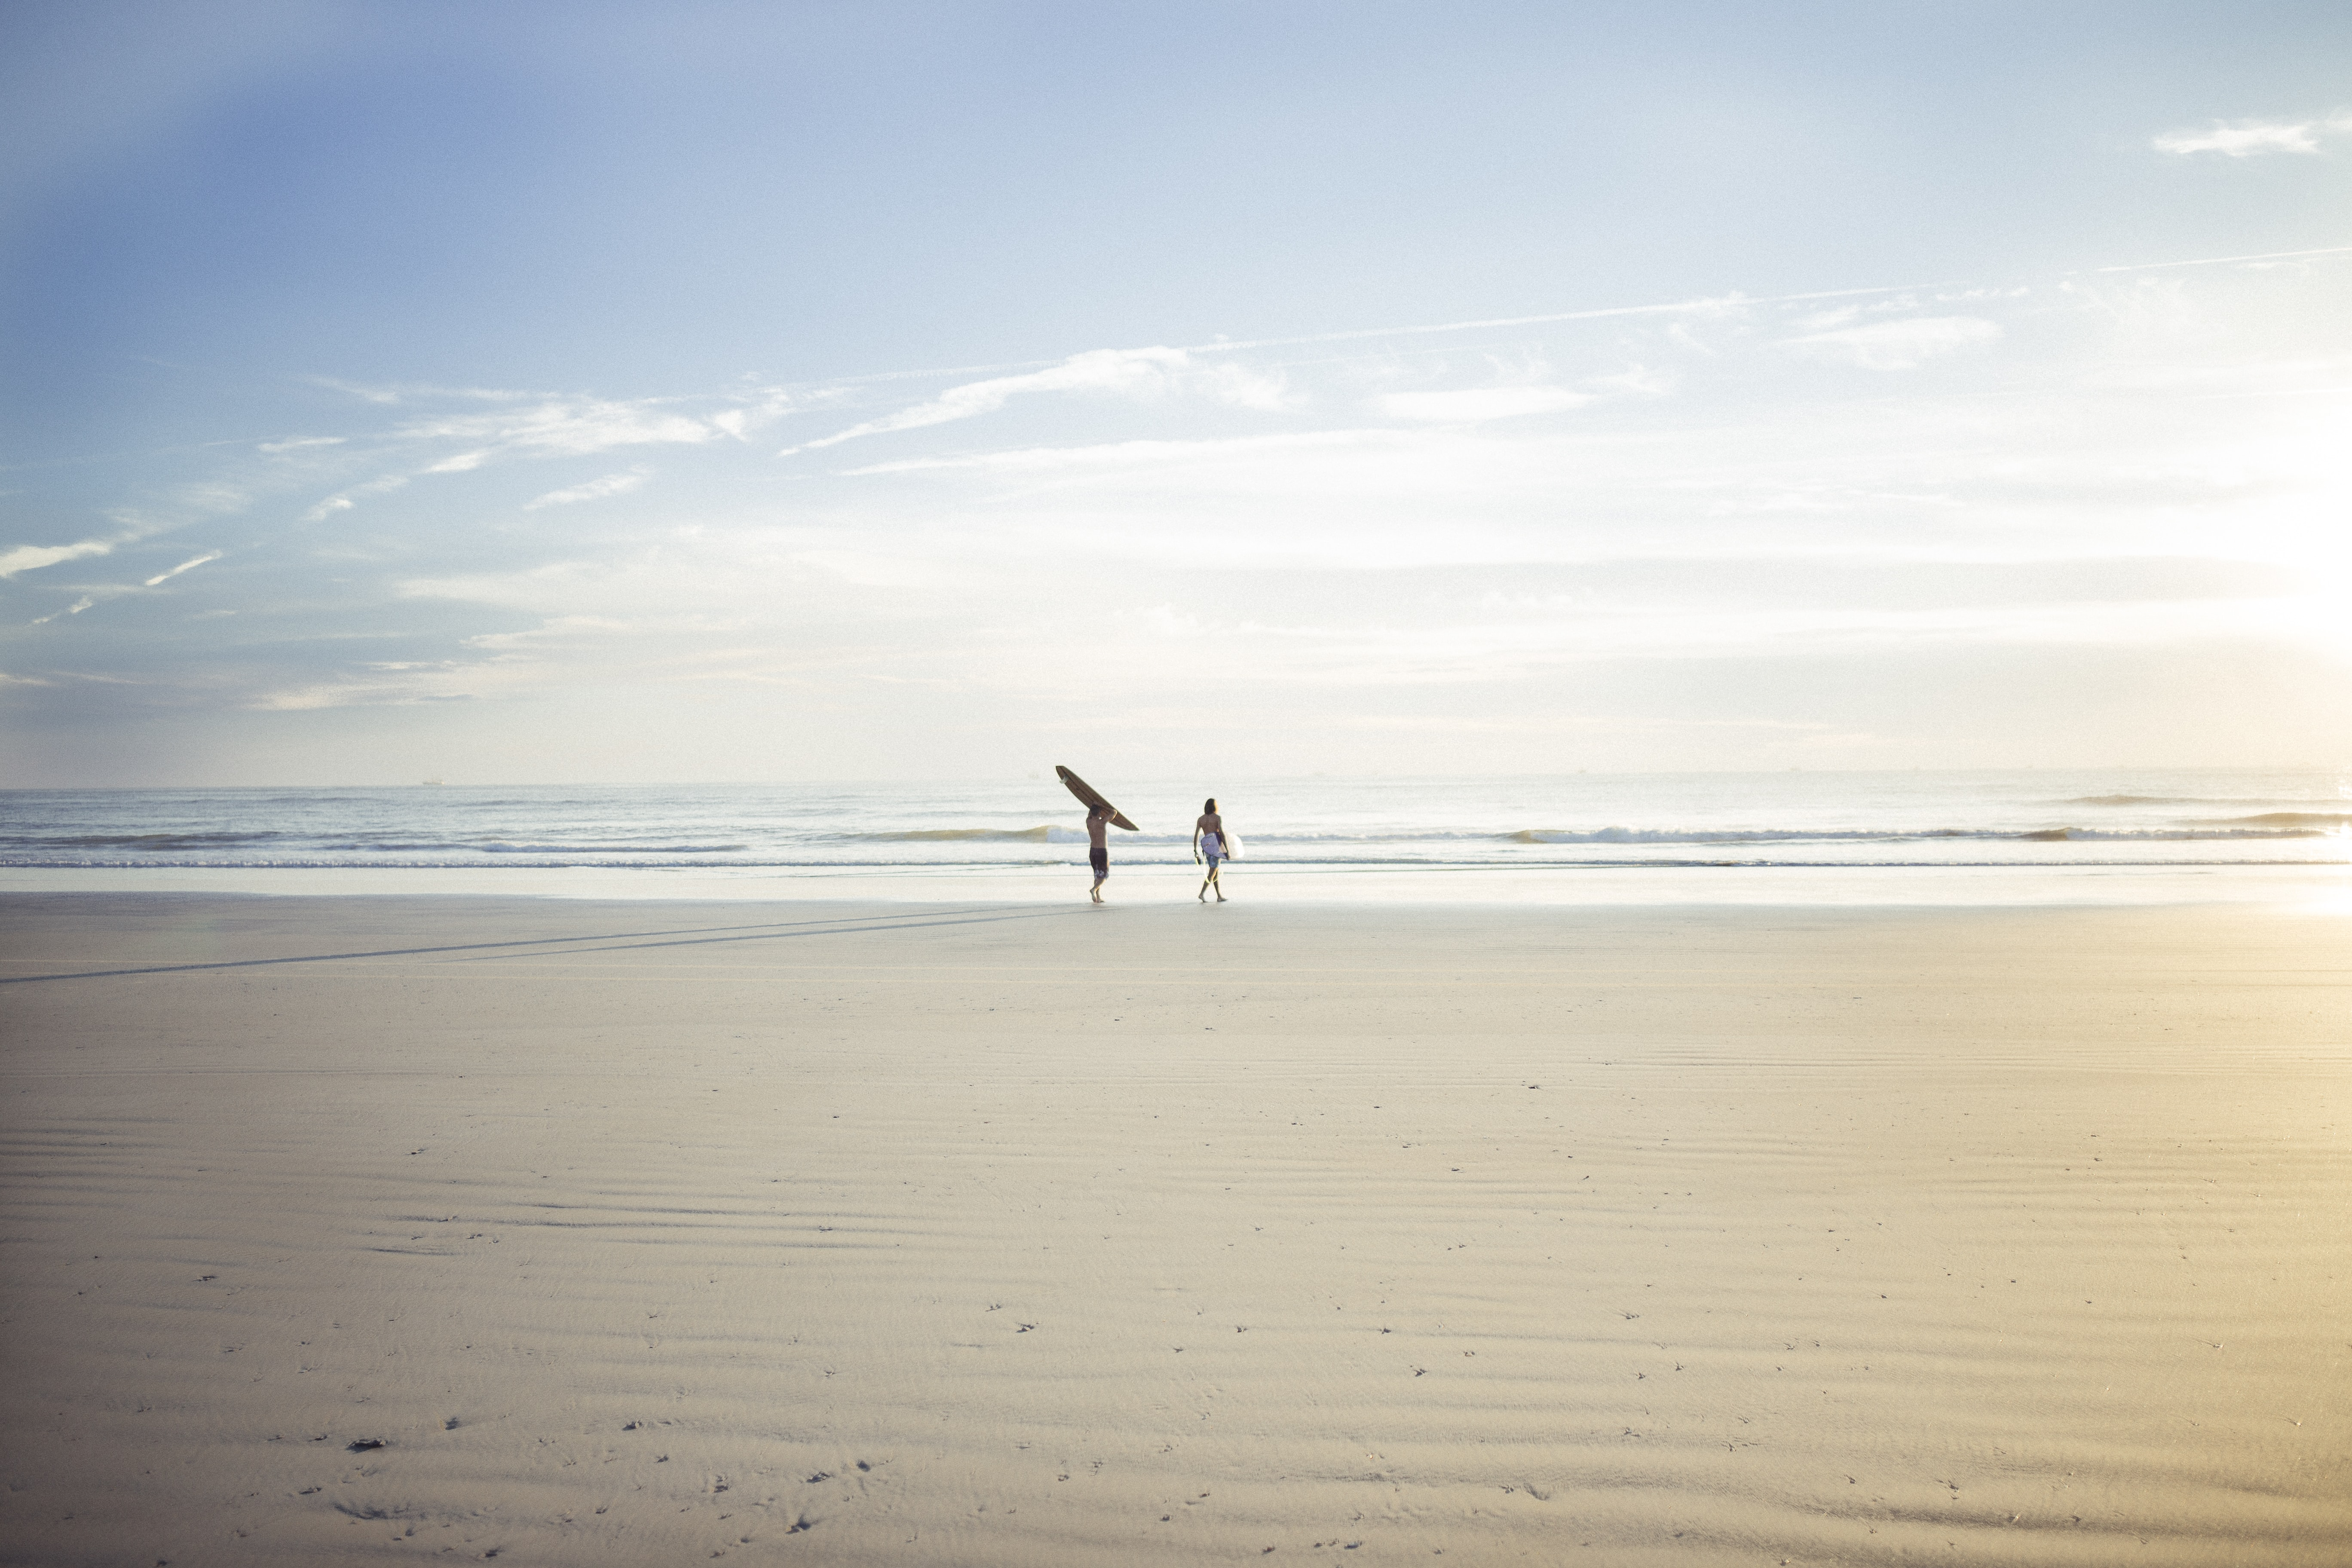 two person standing on seashore under clear blue sky